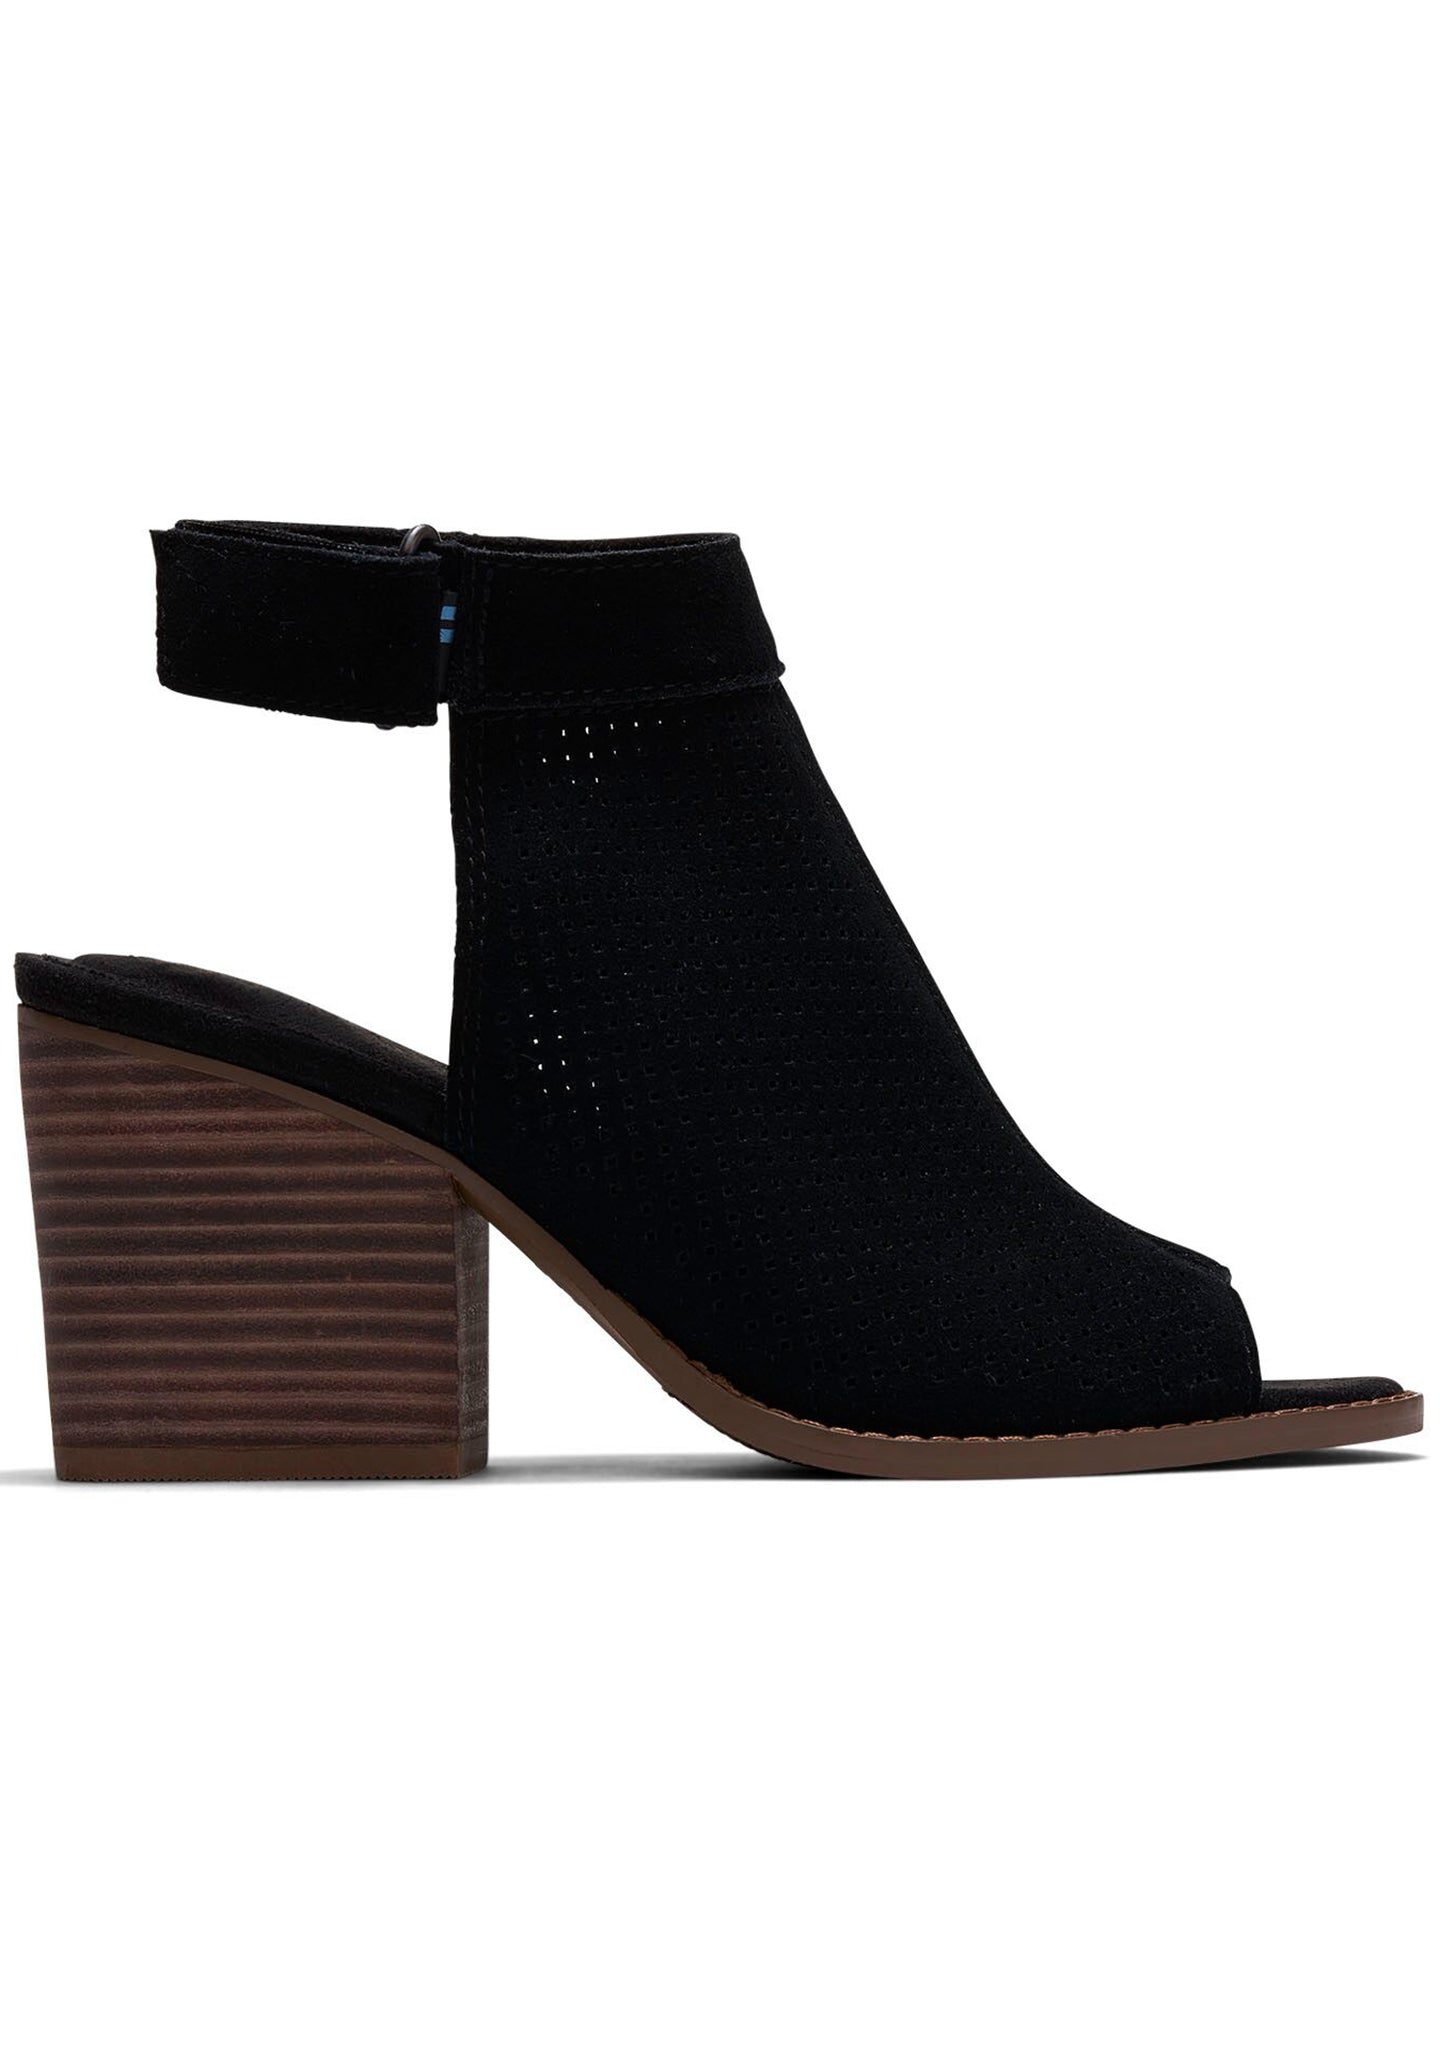 Suede Grenada Sandals in Perforated Black